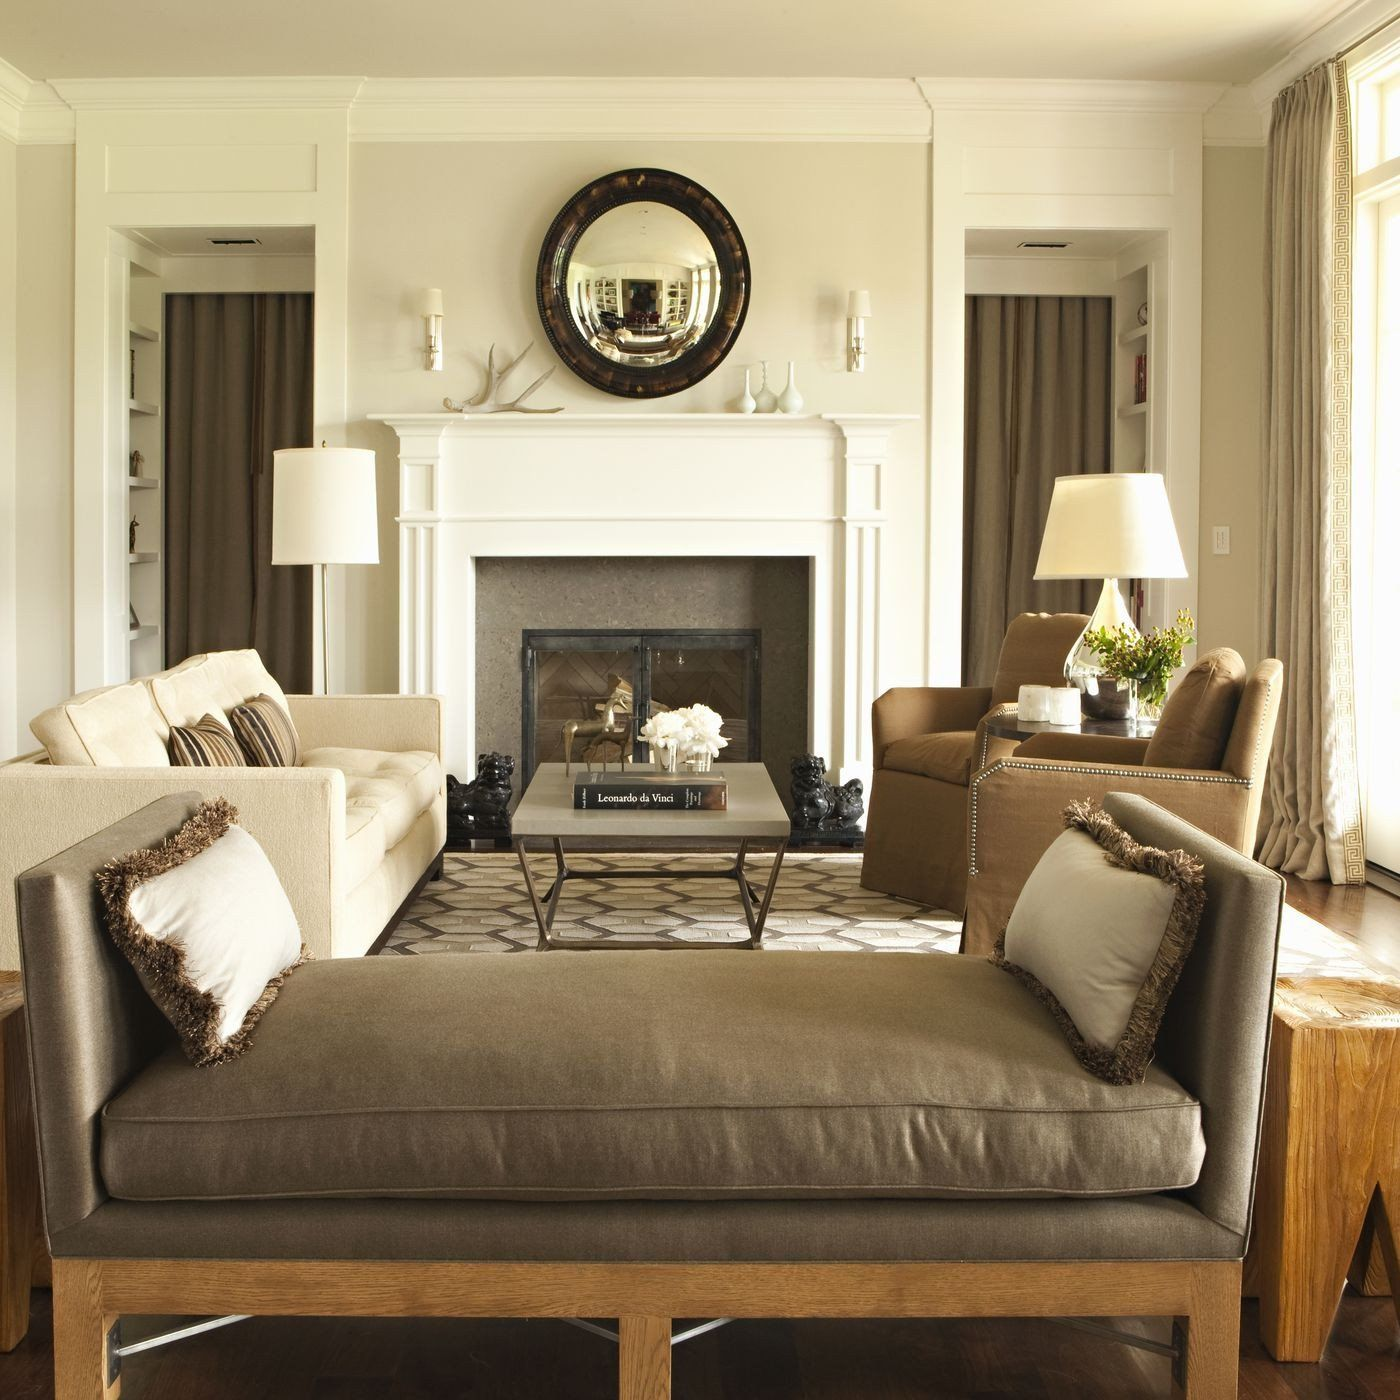 Sand Color Paint For Living Room Best Beige Paint Colors Curbed Beige Living Rooms Living Room Colors Beige Wall Colors